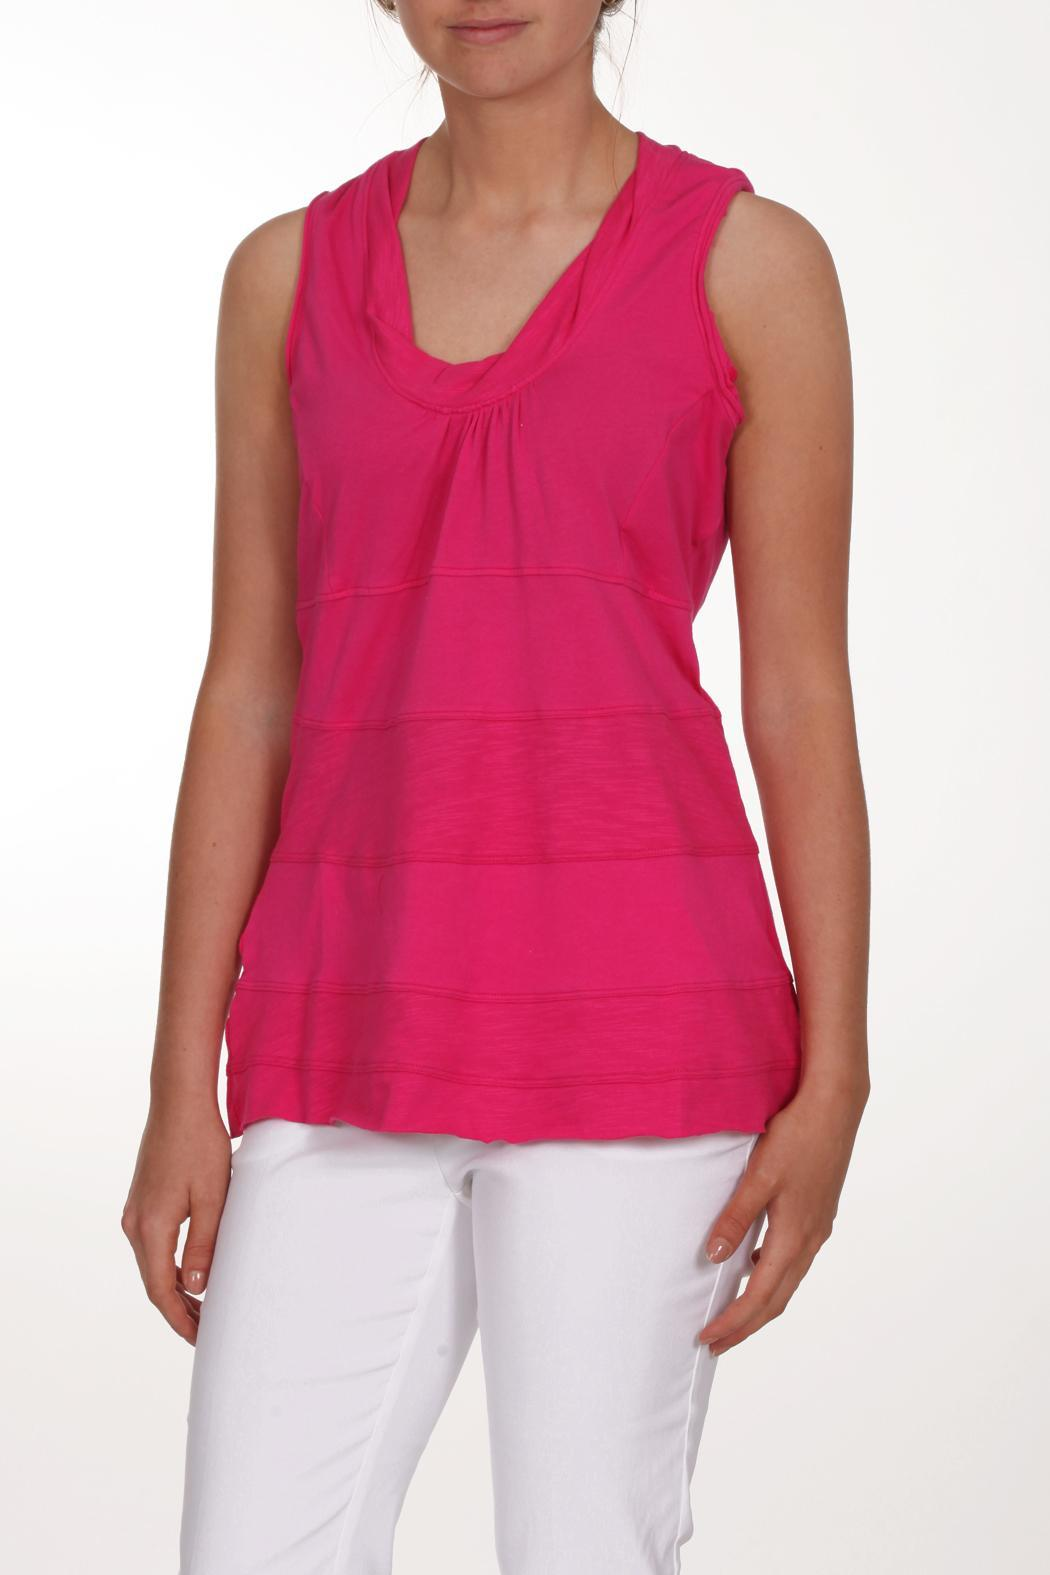 Neon Buddha Pink Sleeveless Top - Front Cropped Image